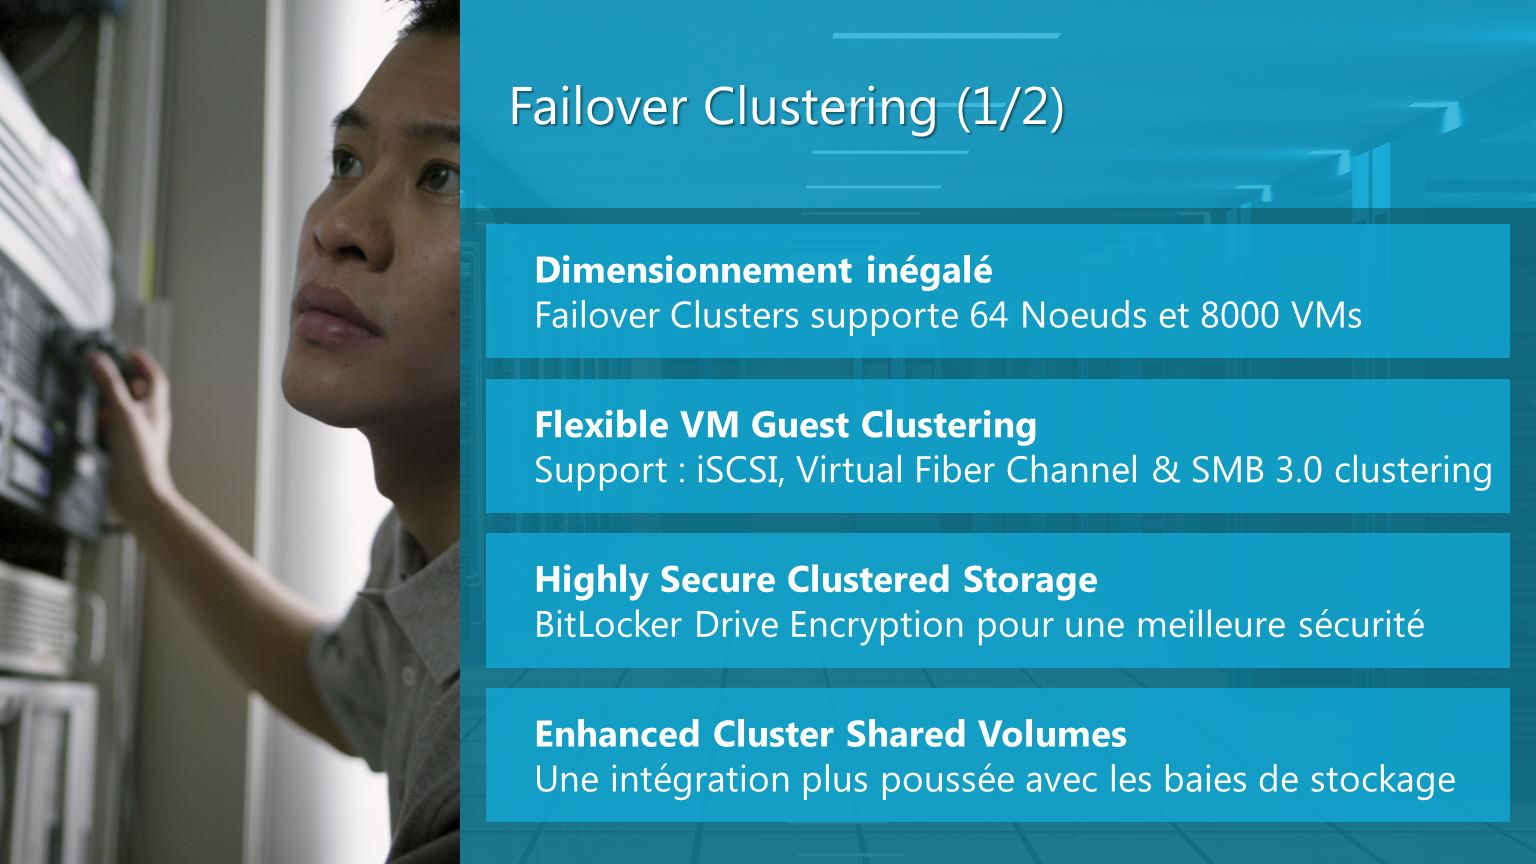 Failover Clustering (1/2)